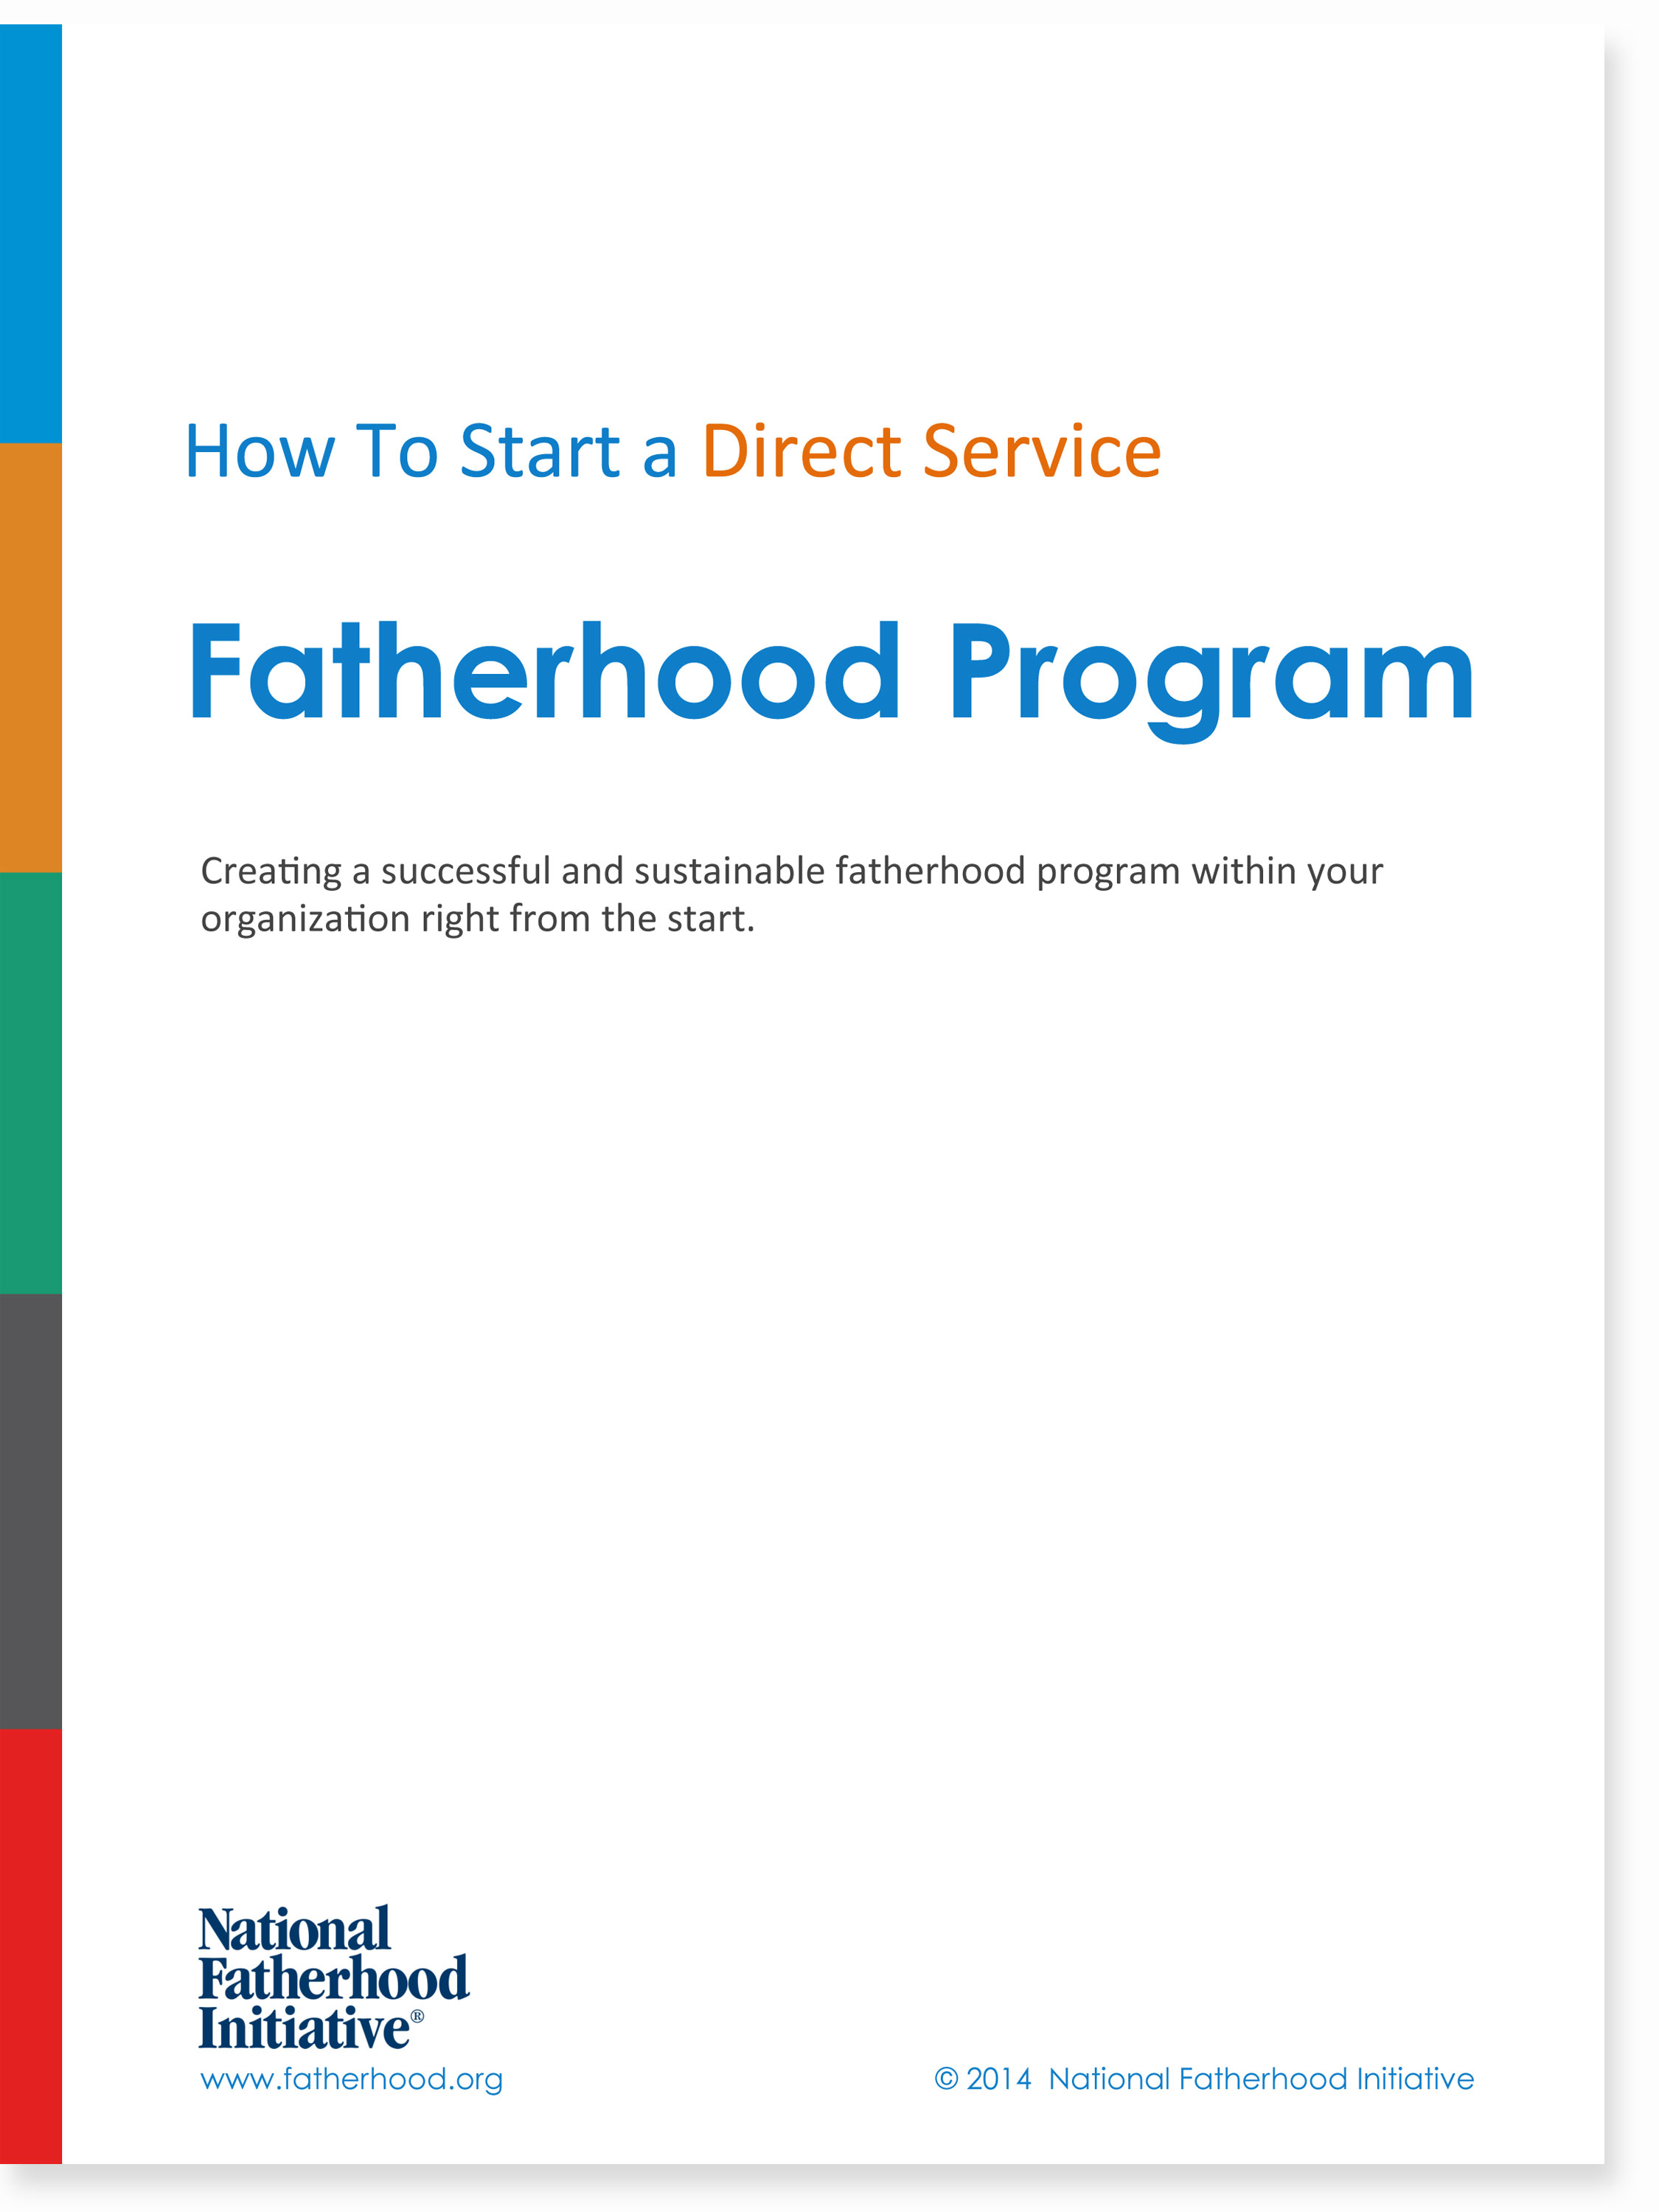 How to Start a Fatherhood Program eBook Cover